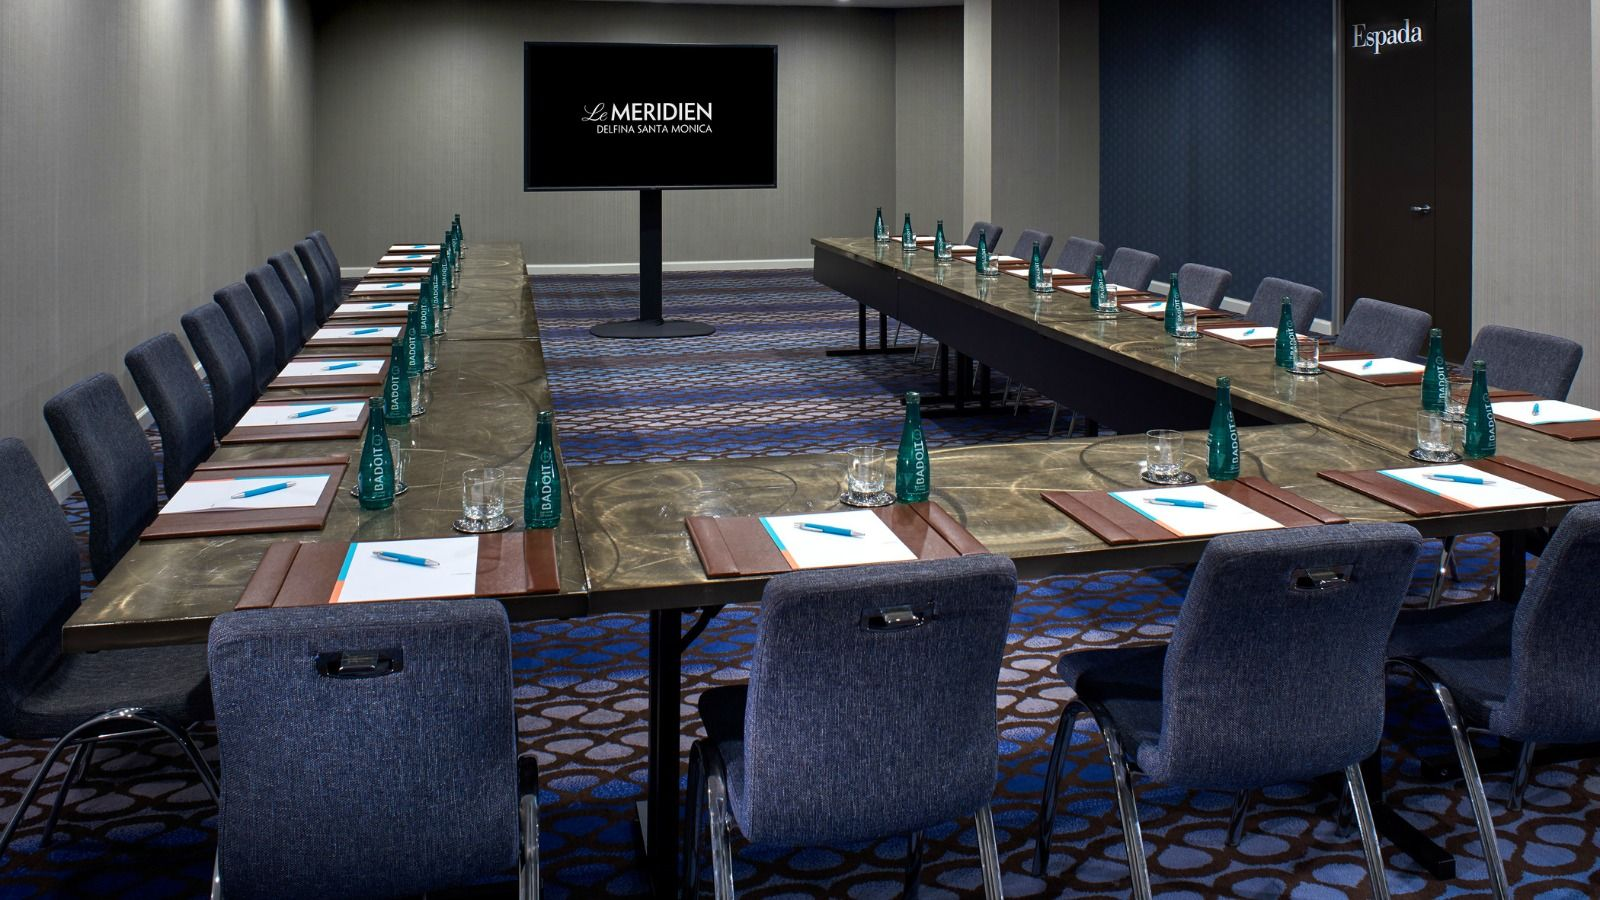 Le Meridien Delfina Santa Monica Meeting Space - Espada